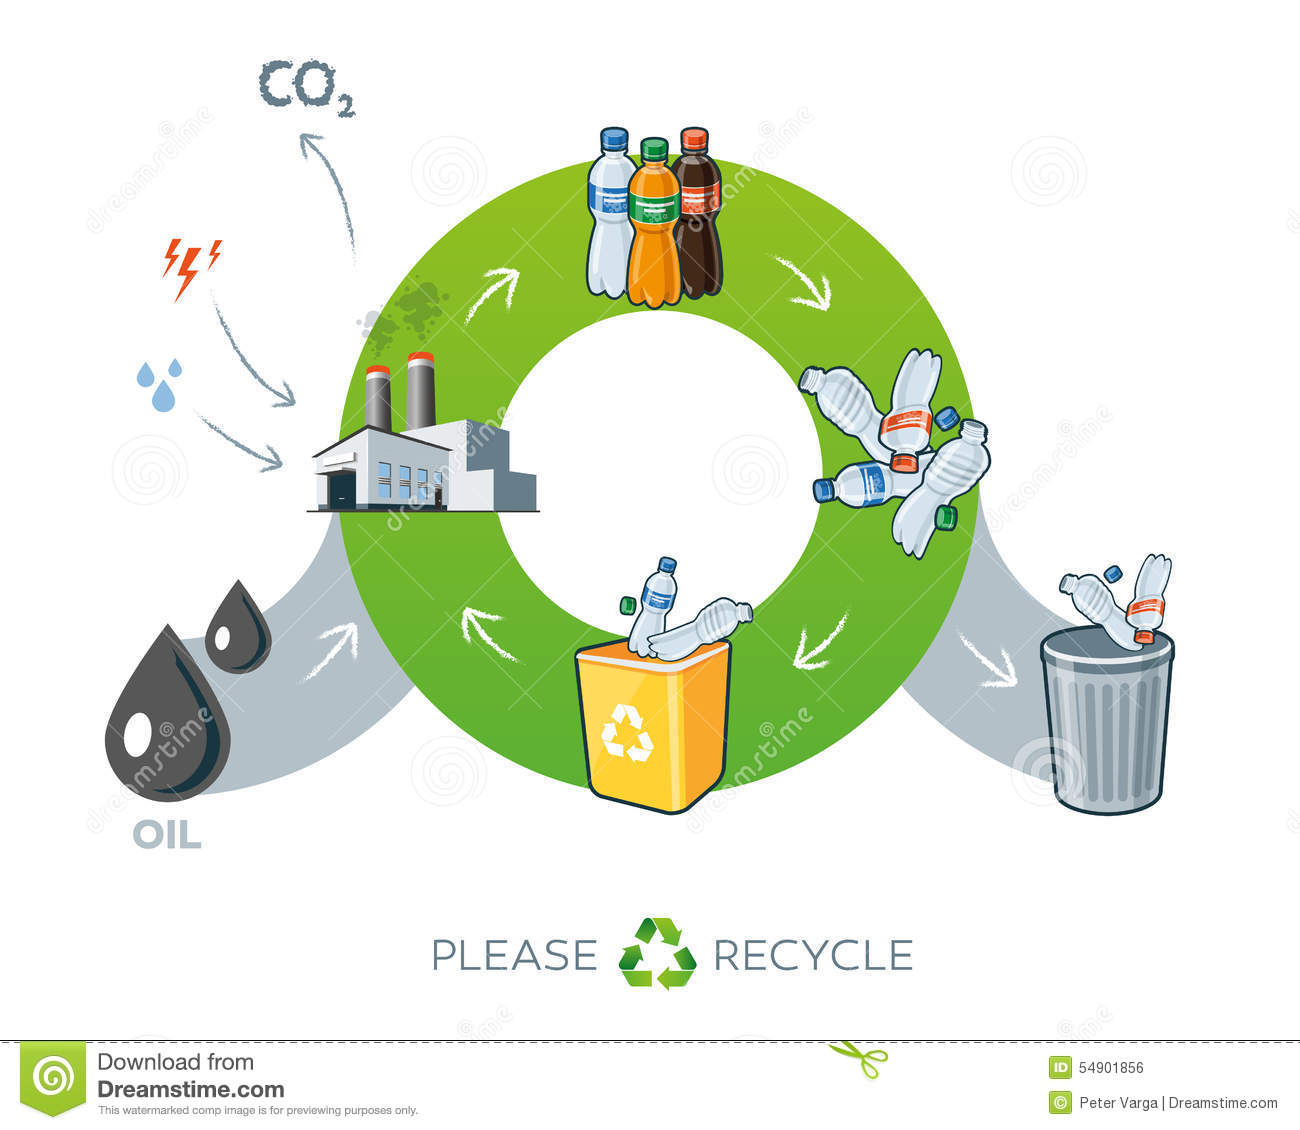 life cycles of paper and plastic bags environmental sciences essay For a long time, paper bags were considered a more environmental alternative  however, consider their whole life cycle and you find a different story  still,  overall, disposable paper bags are as questionable as disposable plastic bags  when  recent studies suggest we may consider landfill more like long term  storage.